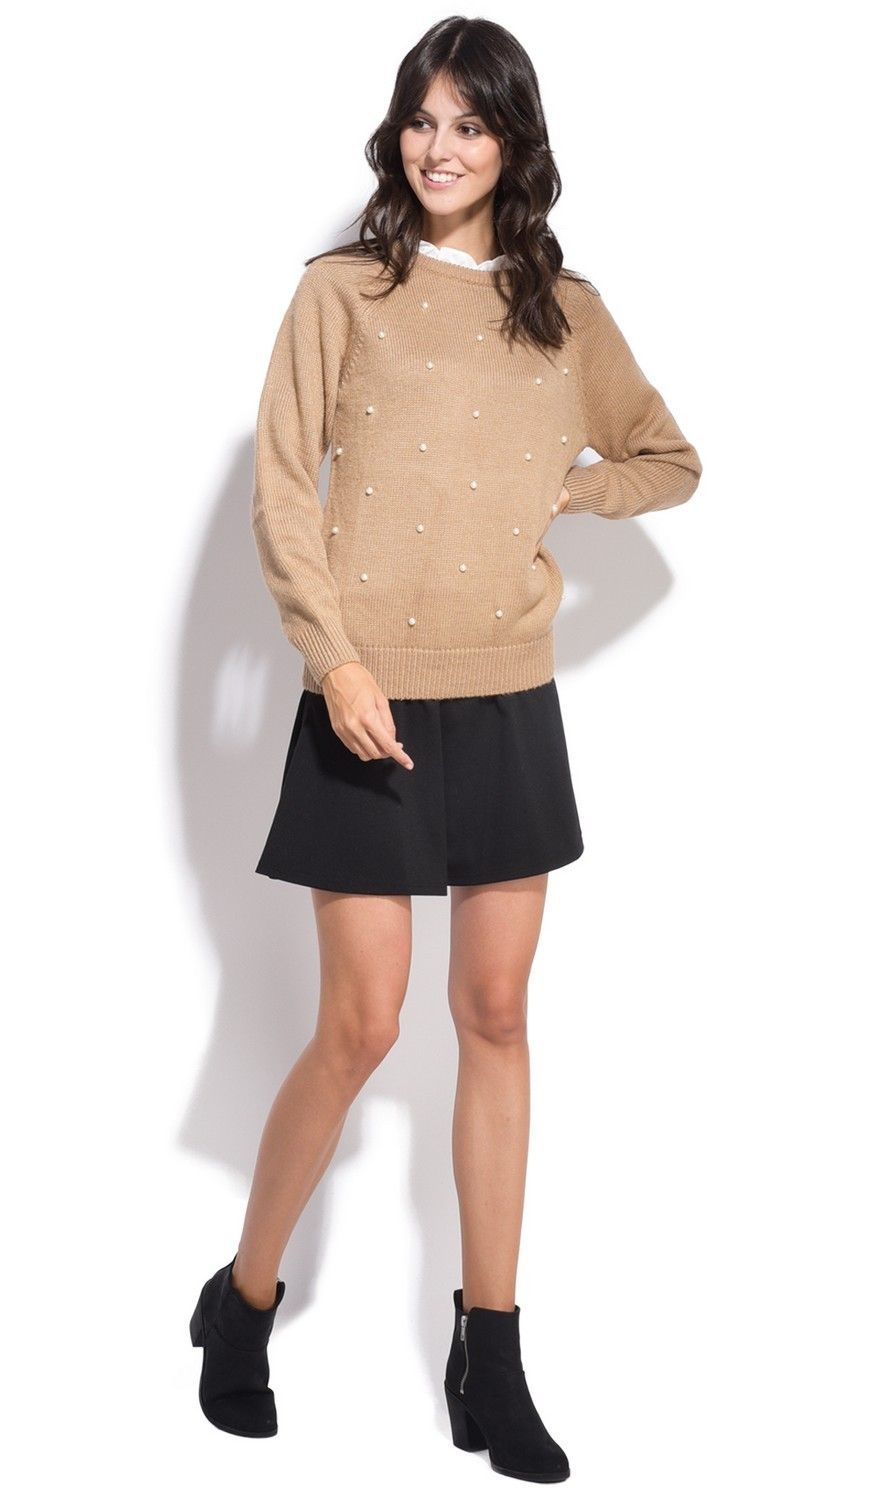 Assuili Ruffle Neck Long Sleeve Ribbed Sweater in Beige